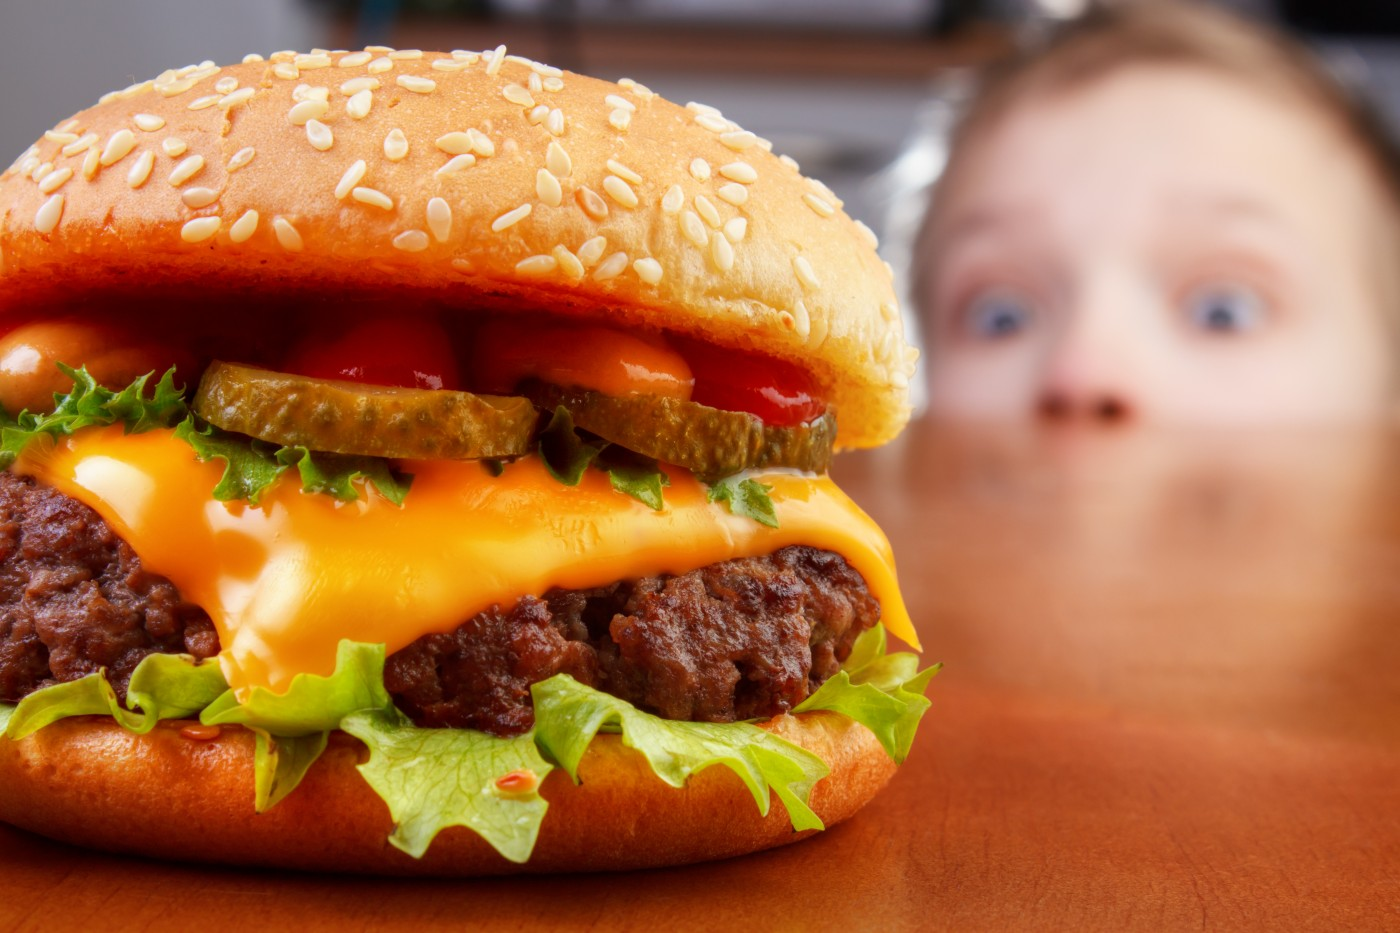 Effectiveness of Fast-Food Restrictions in Schools Revealed in New Study